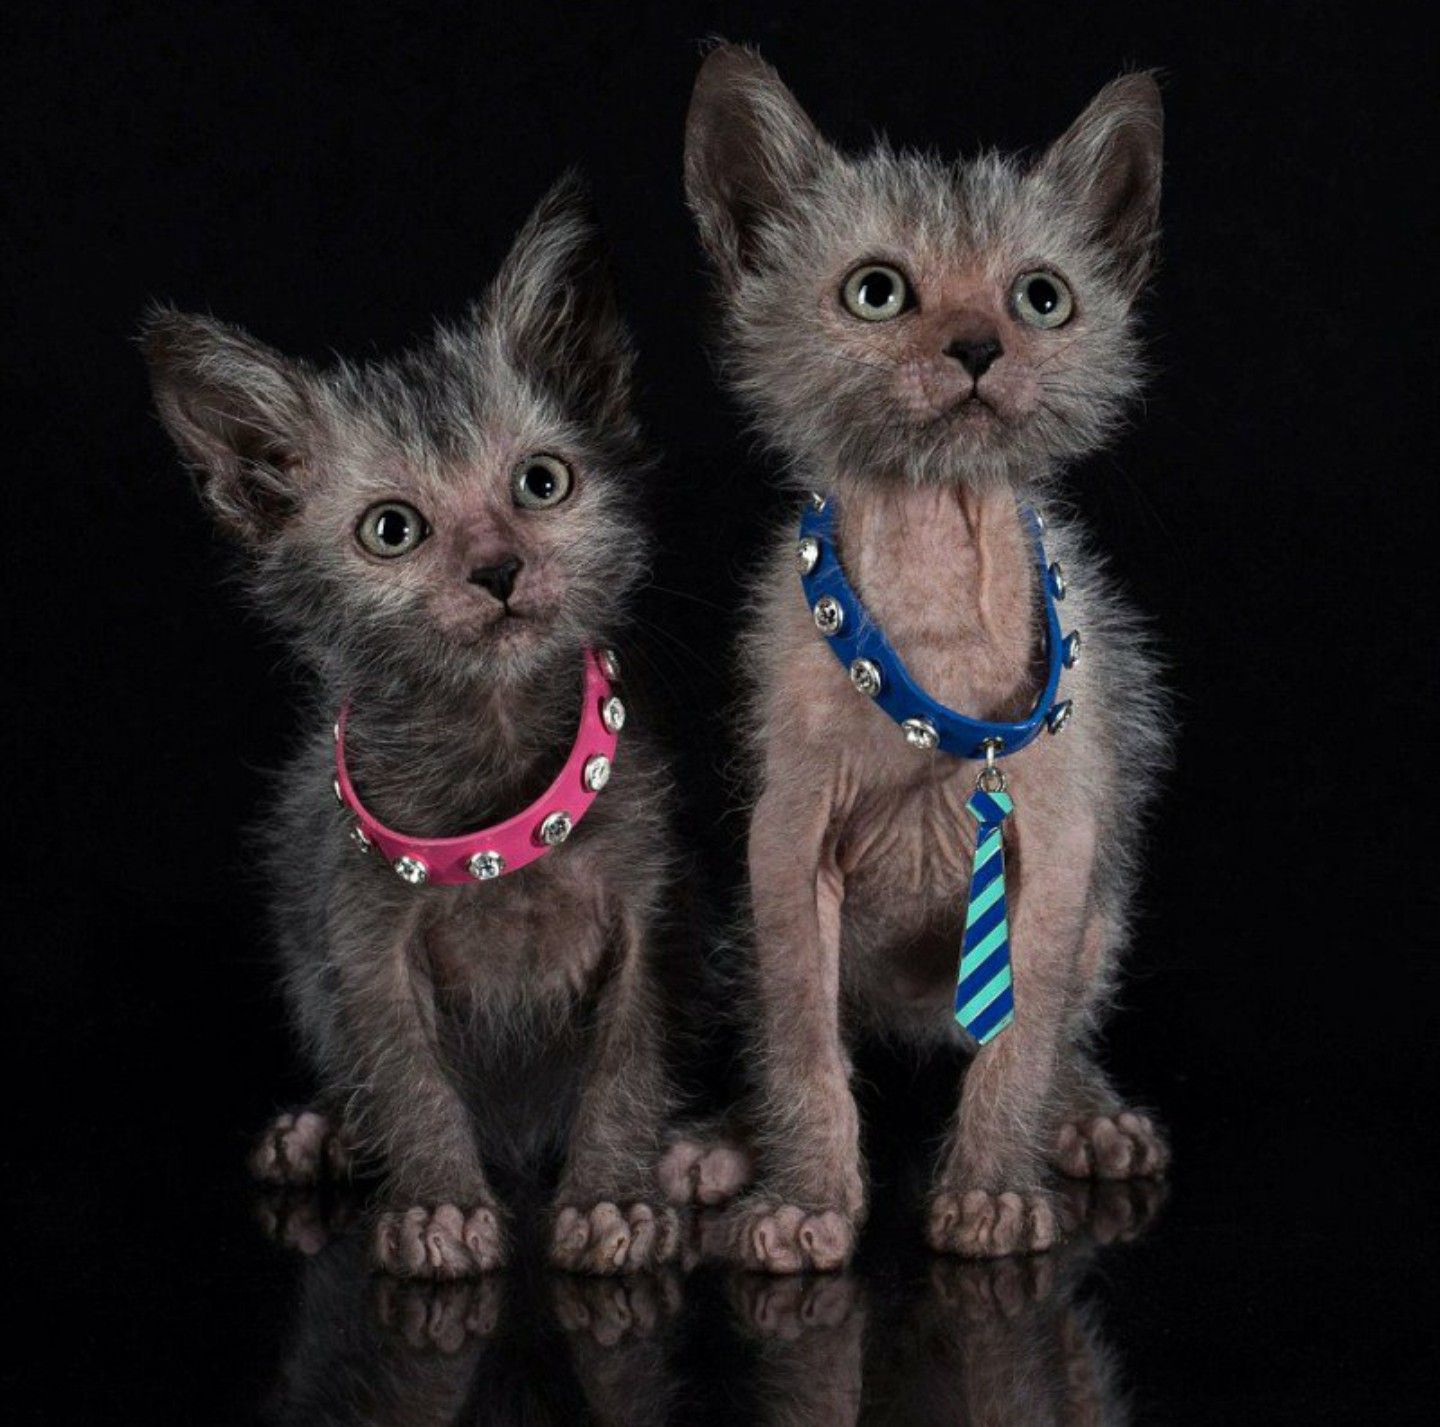 werewolf kitties | lykoi kitties | =^.^= I❤cats | Pinterest | Cat